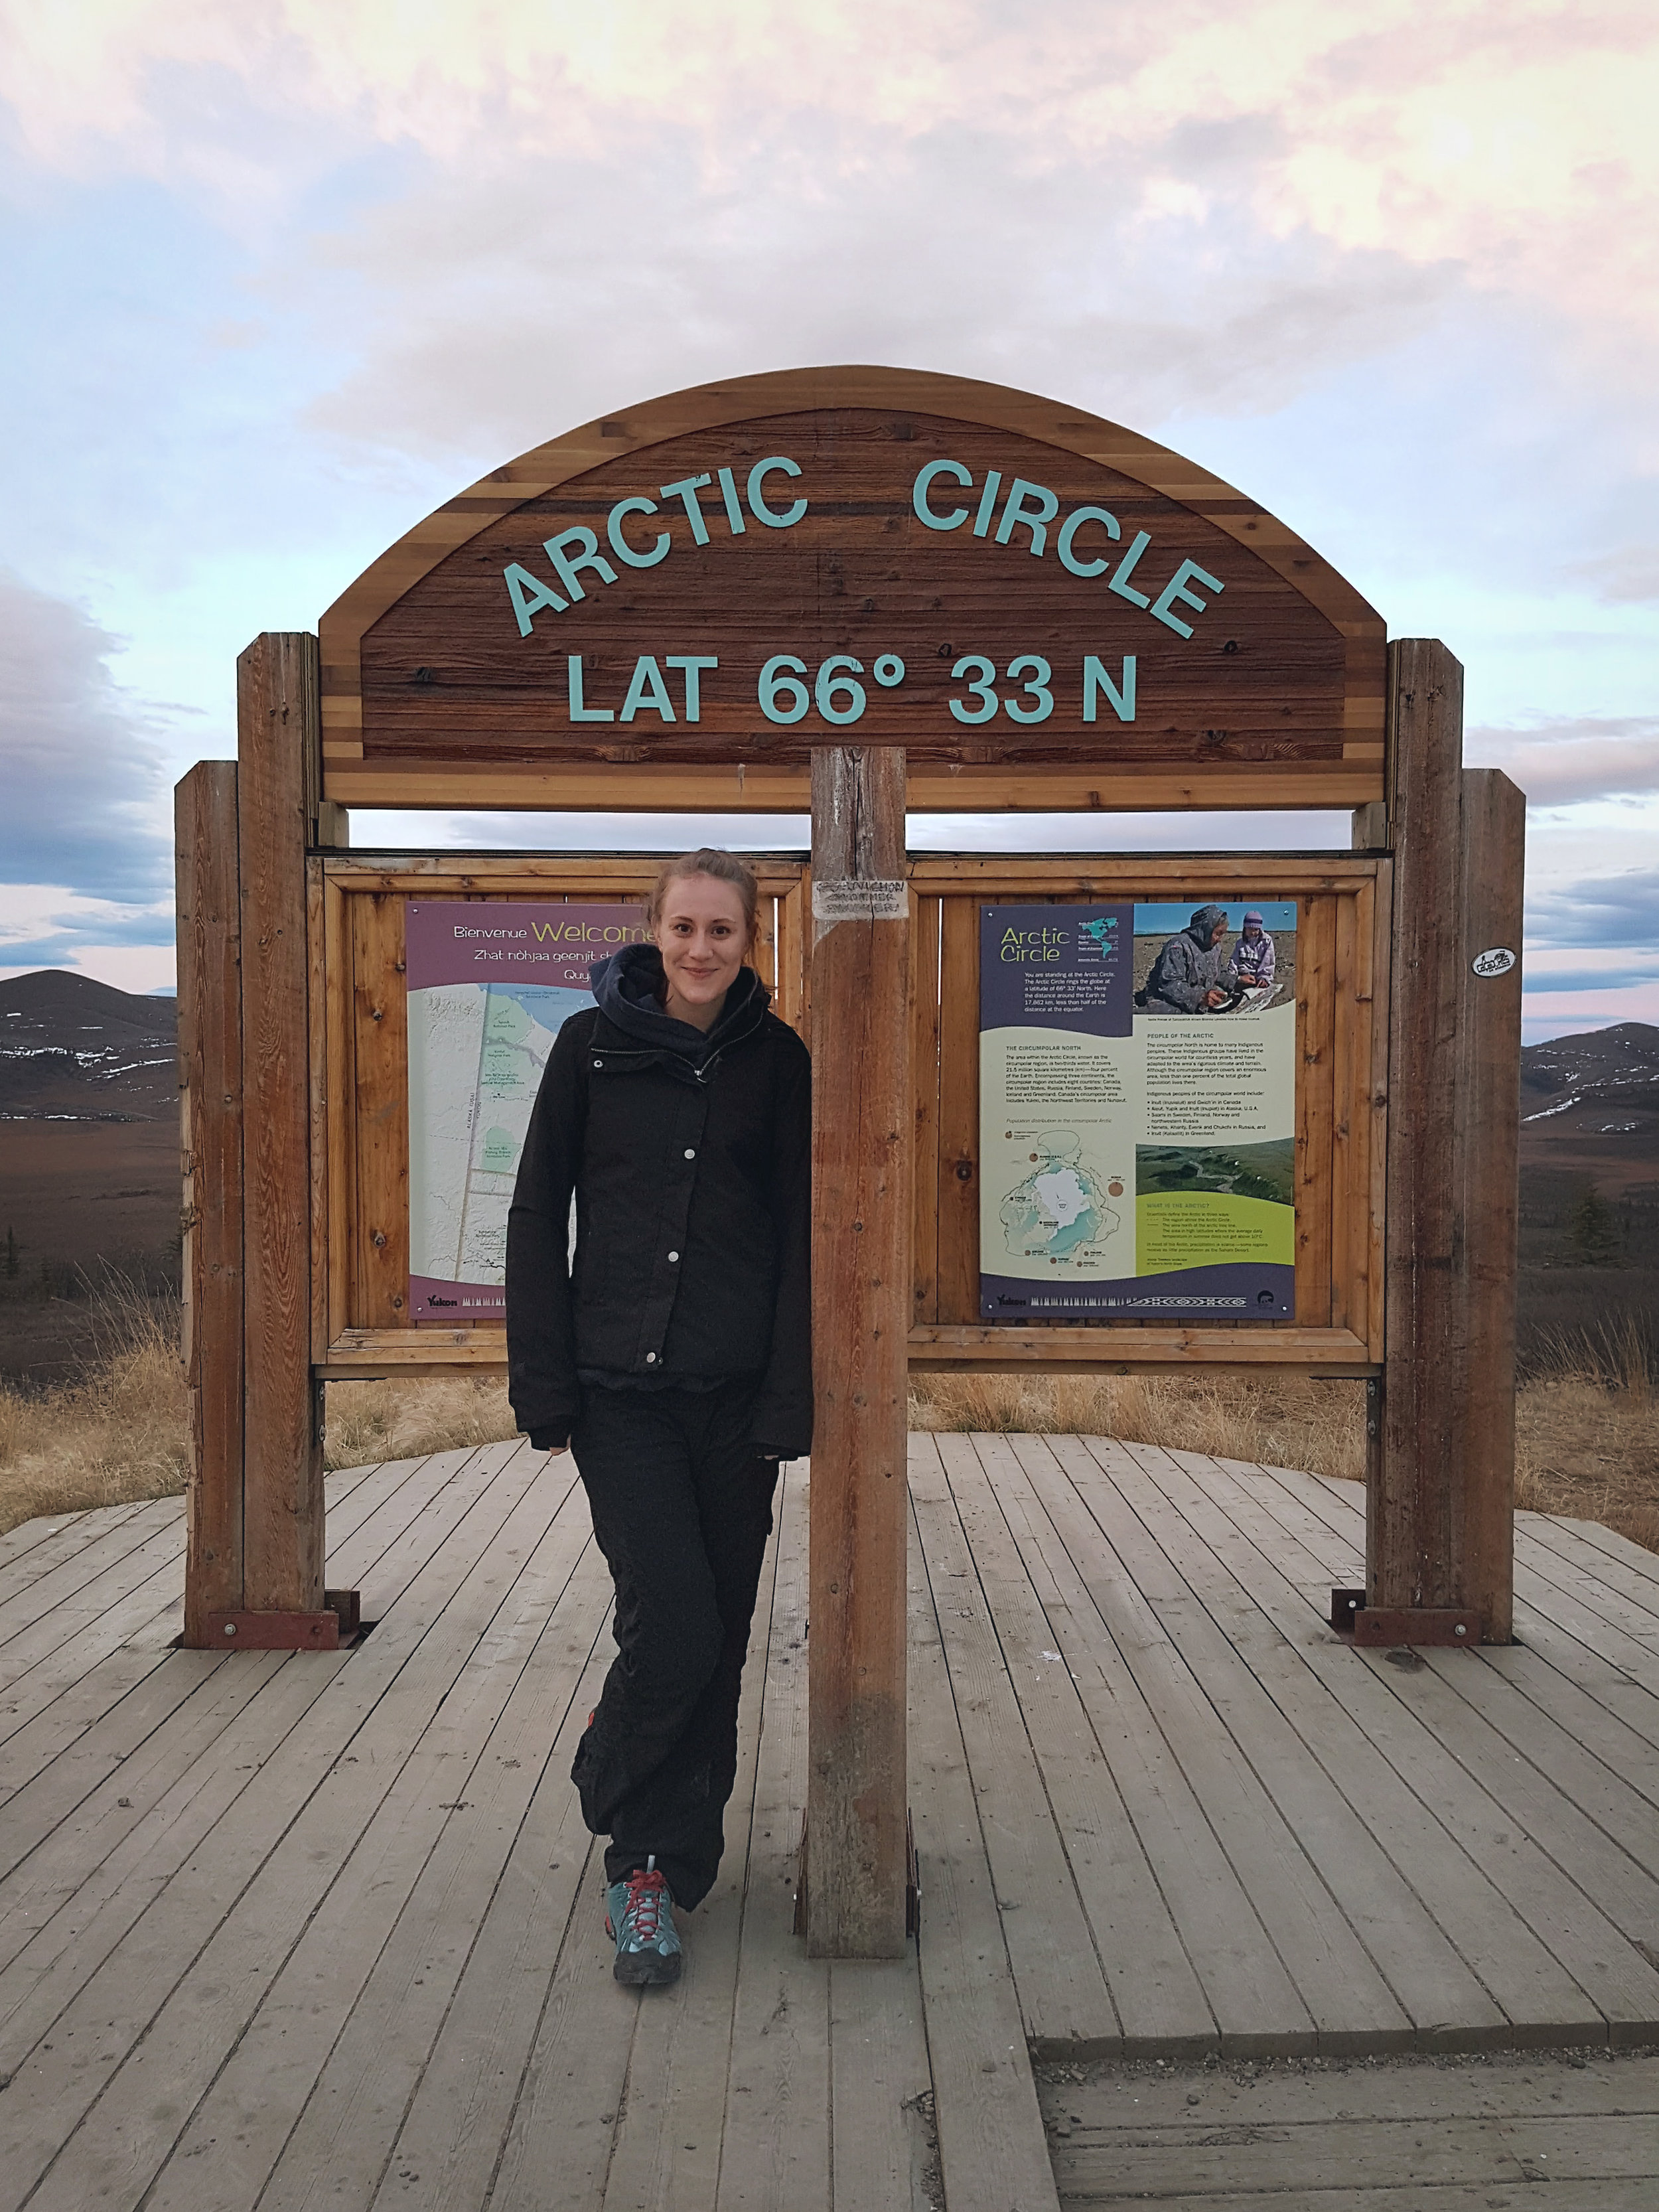 Arctic Circle - Across the Blue Planet